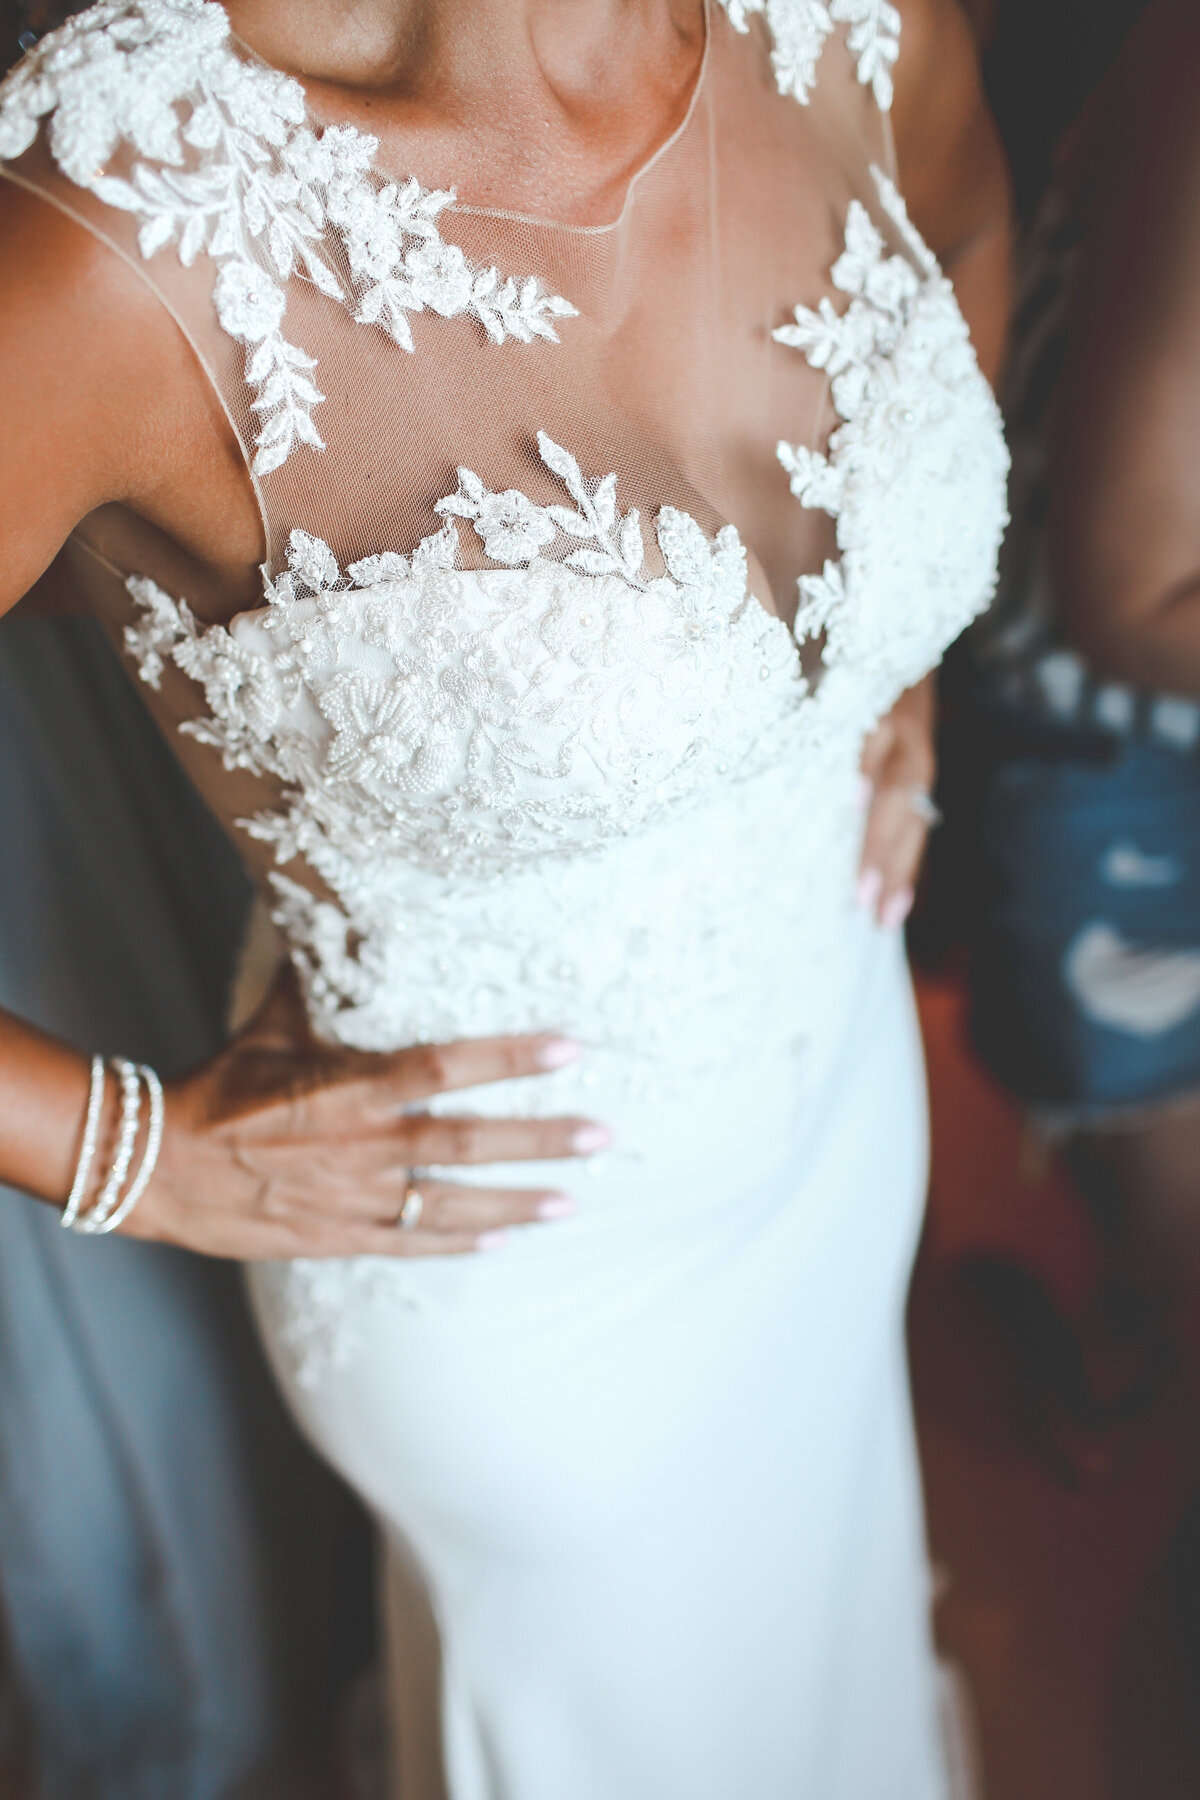 DESTINATION-WEDDING-SPAIN-HANNAH-MACGREGOR-PHOTOGRAPHY-0019